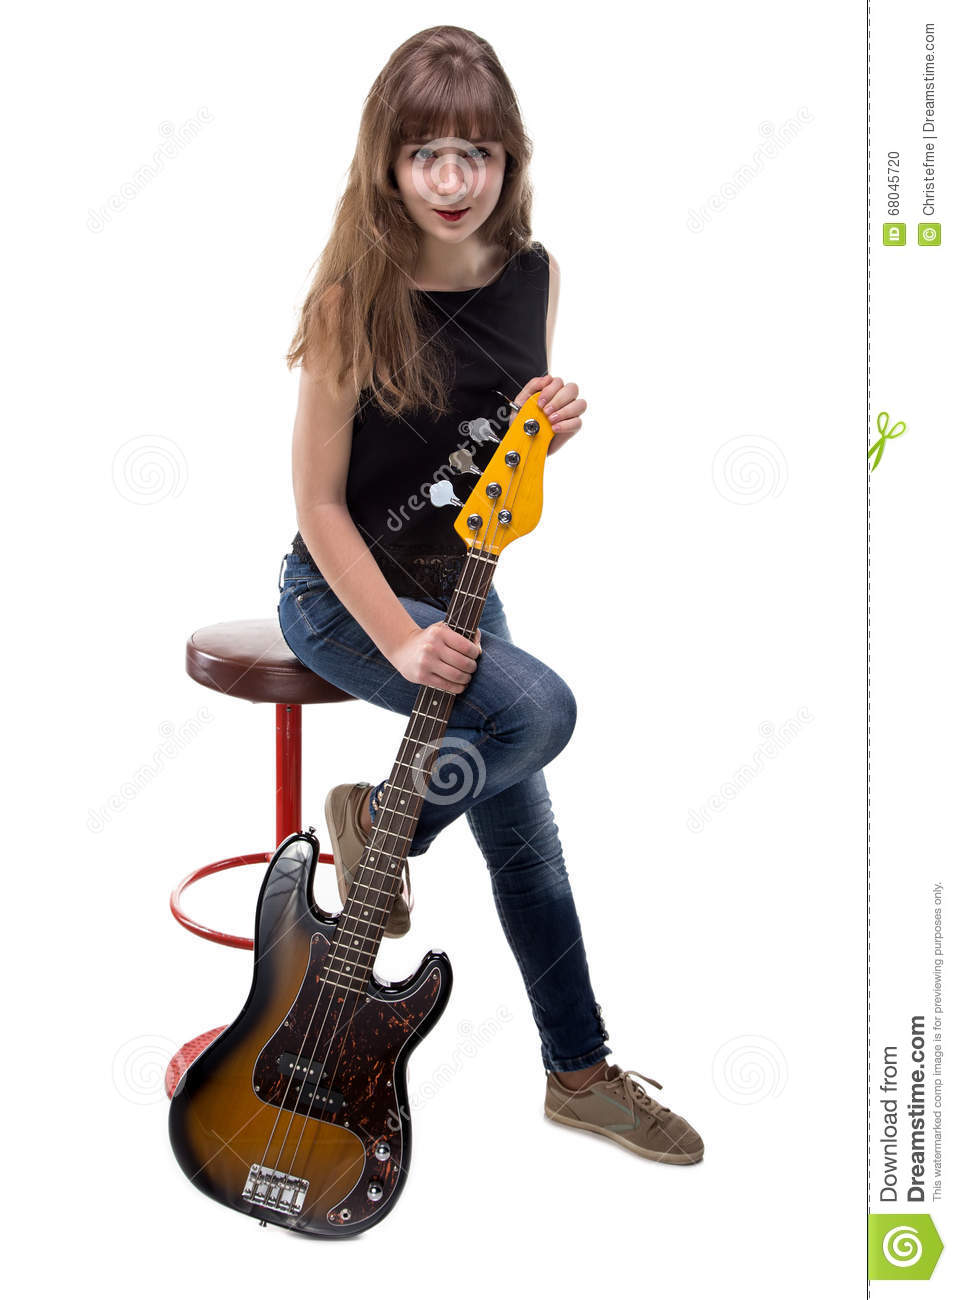 Happy Teenage Girl Sitting On Bar Stool Stock Photo  : happy teenage girl sitting bar stool white background 68045720 from www.dreamstime.com size 957 x 1300 jpeg 96kB